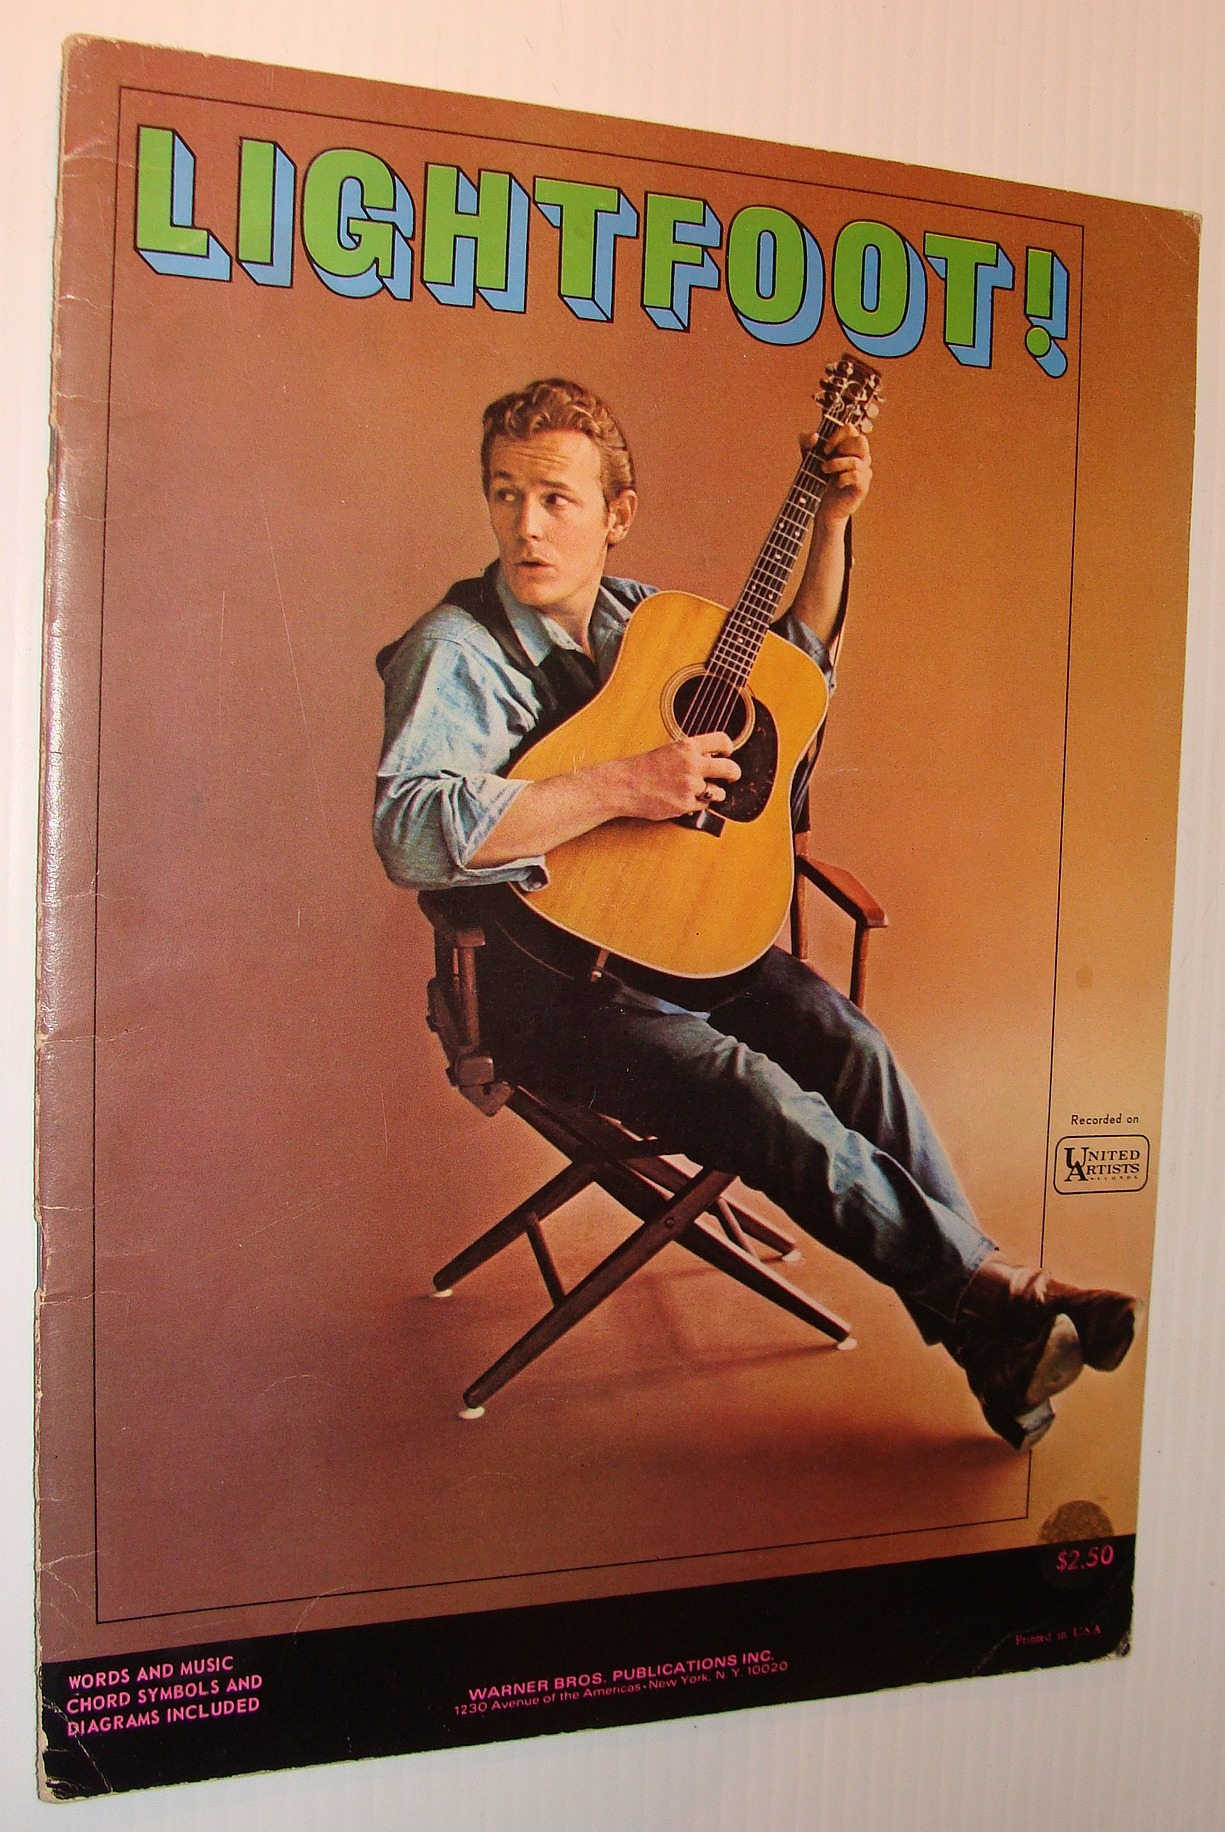 Image for Lightfoot!: Original Gordon Lightfoot Songbook - Words and Music, Chord Symbols and Diagrams Included